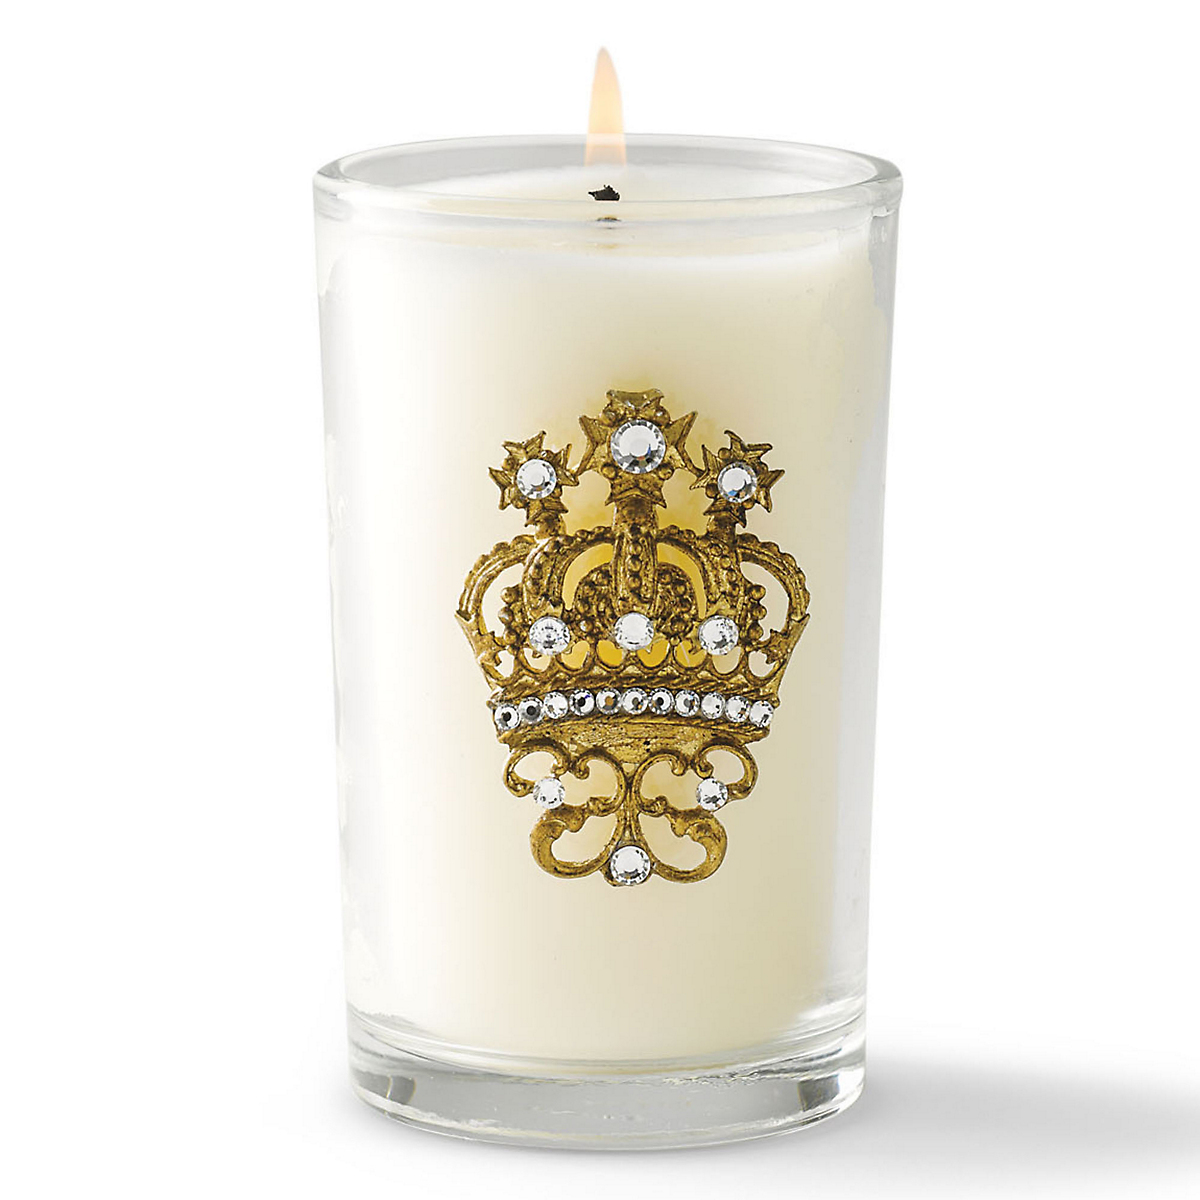 Swarovski Crystal Crown Candle